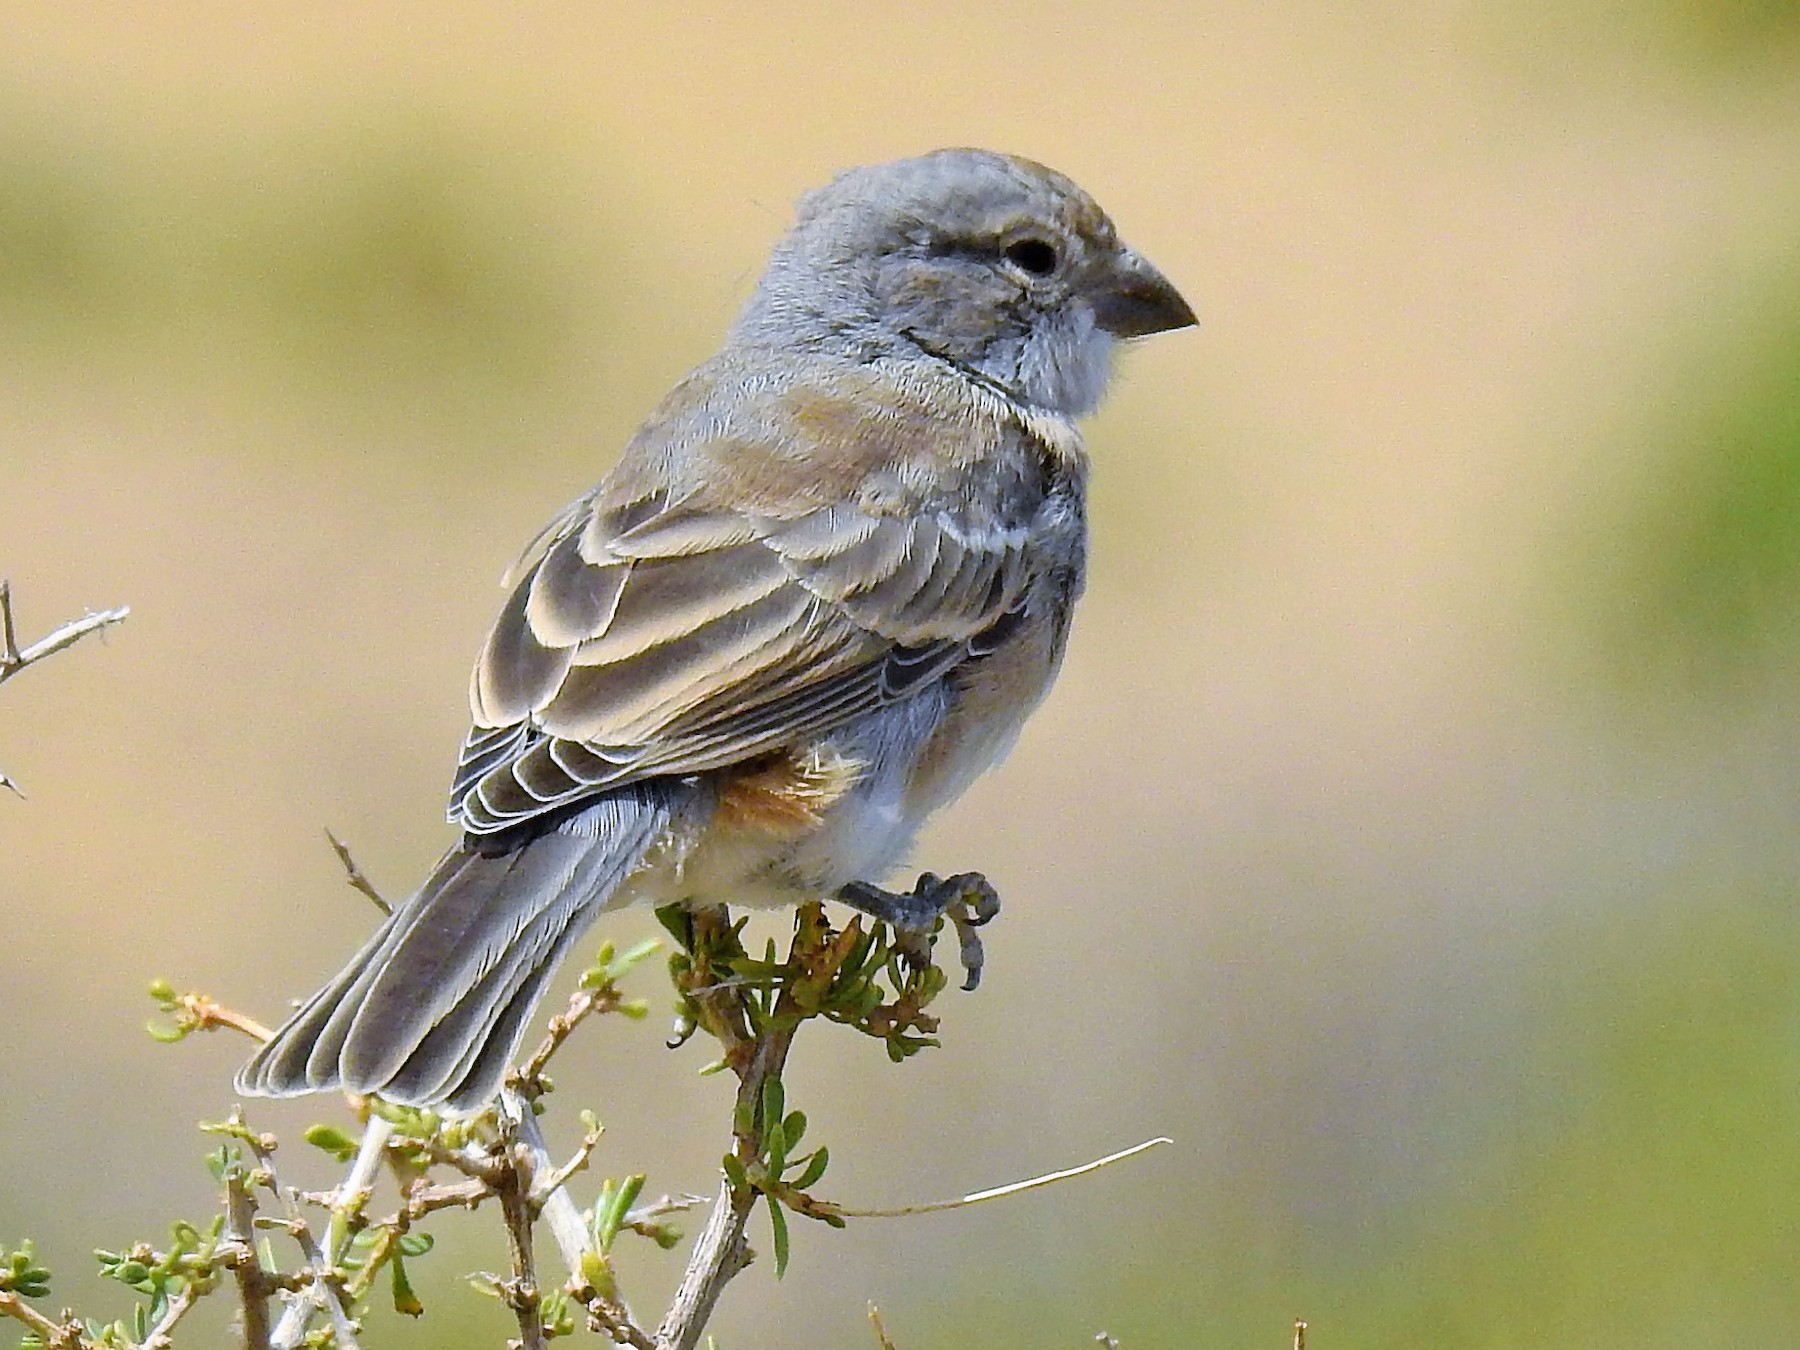 Common Diuca-Finch - Pablo Alejandro Pla